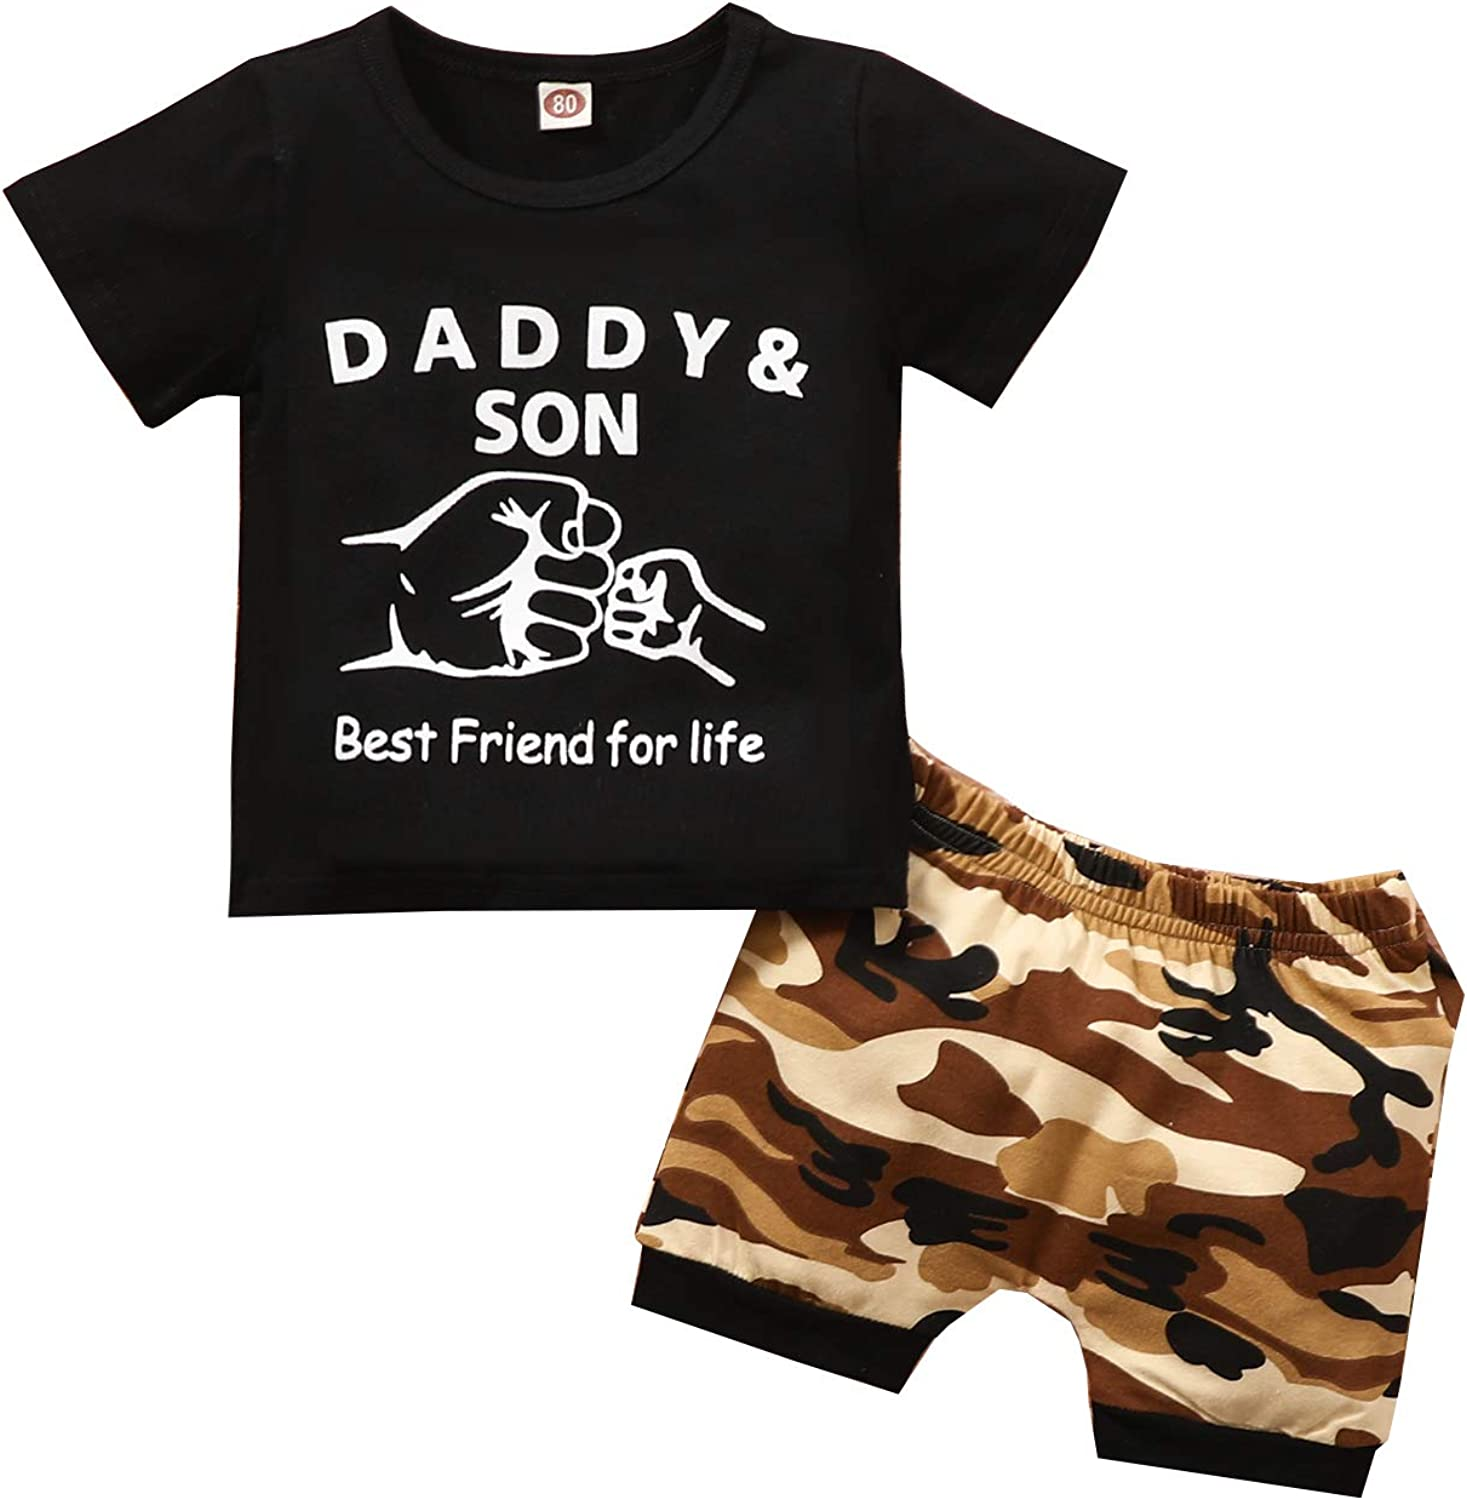 DaddySon Outfits Super sale Baby Cash special price Boy Clothes T Short Sleeves T-Shirt Black